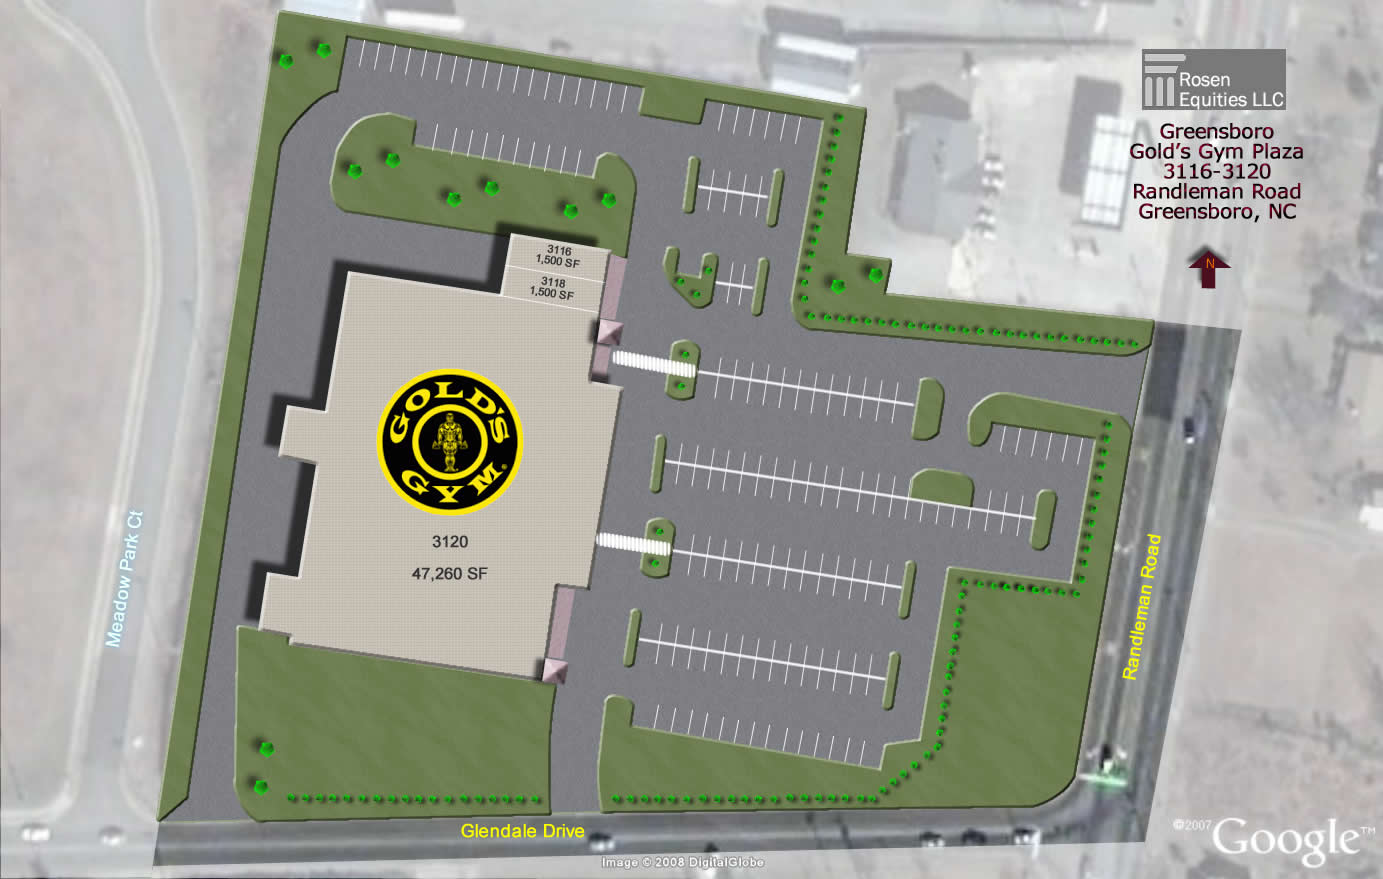 Greensboro Gold's Gym Plaza Siteplan